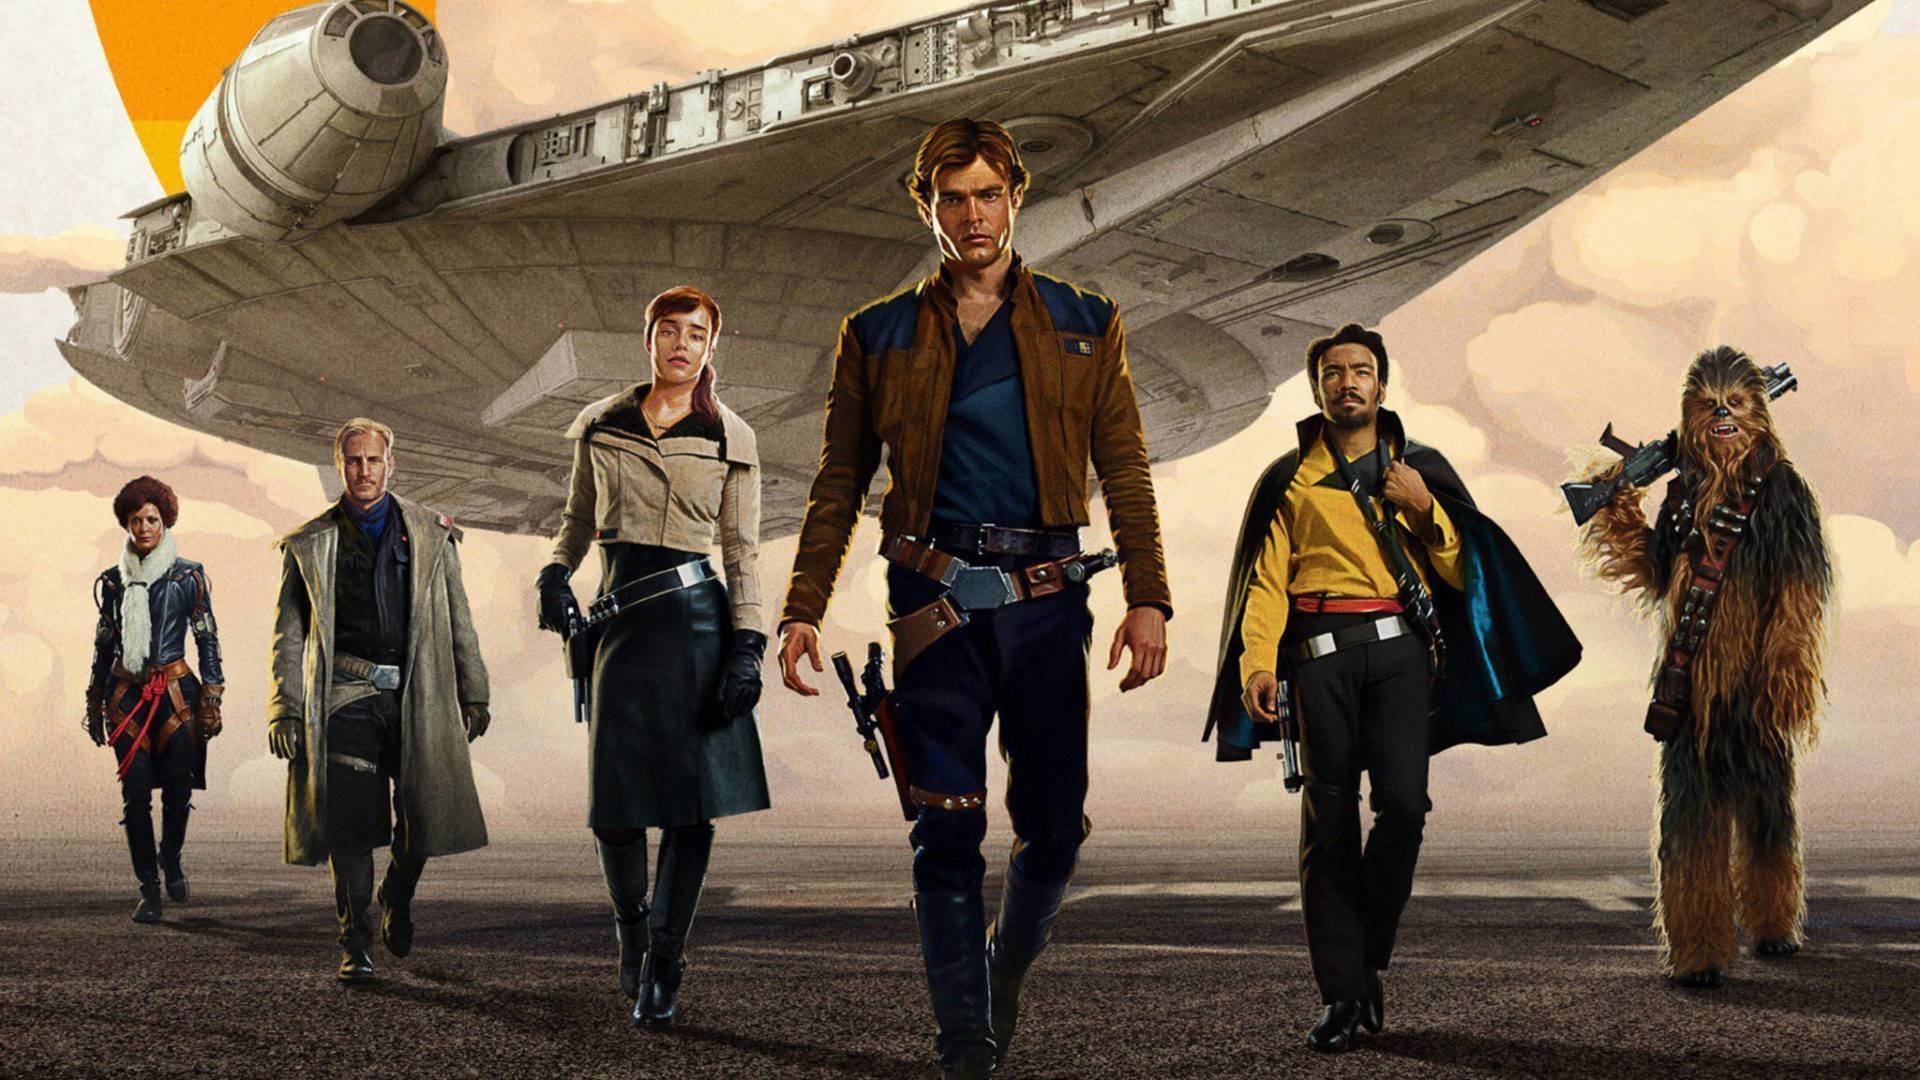 Han-solo-una-historia-de-star-wars-personajes-game-it-1920x1080